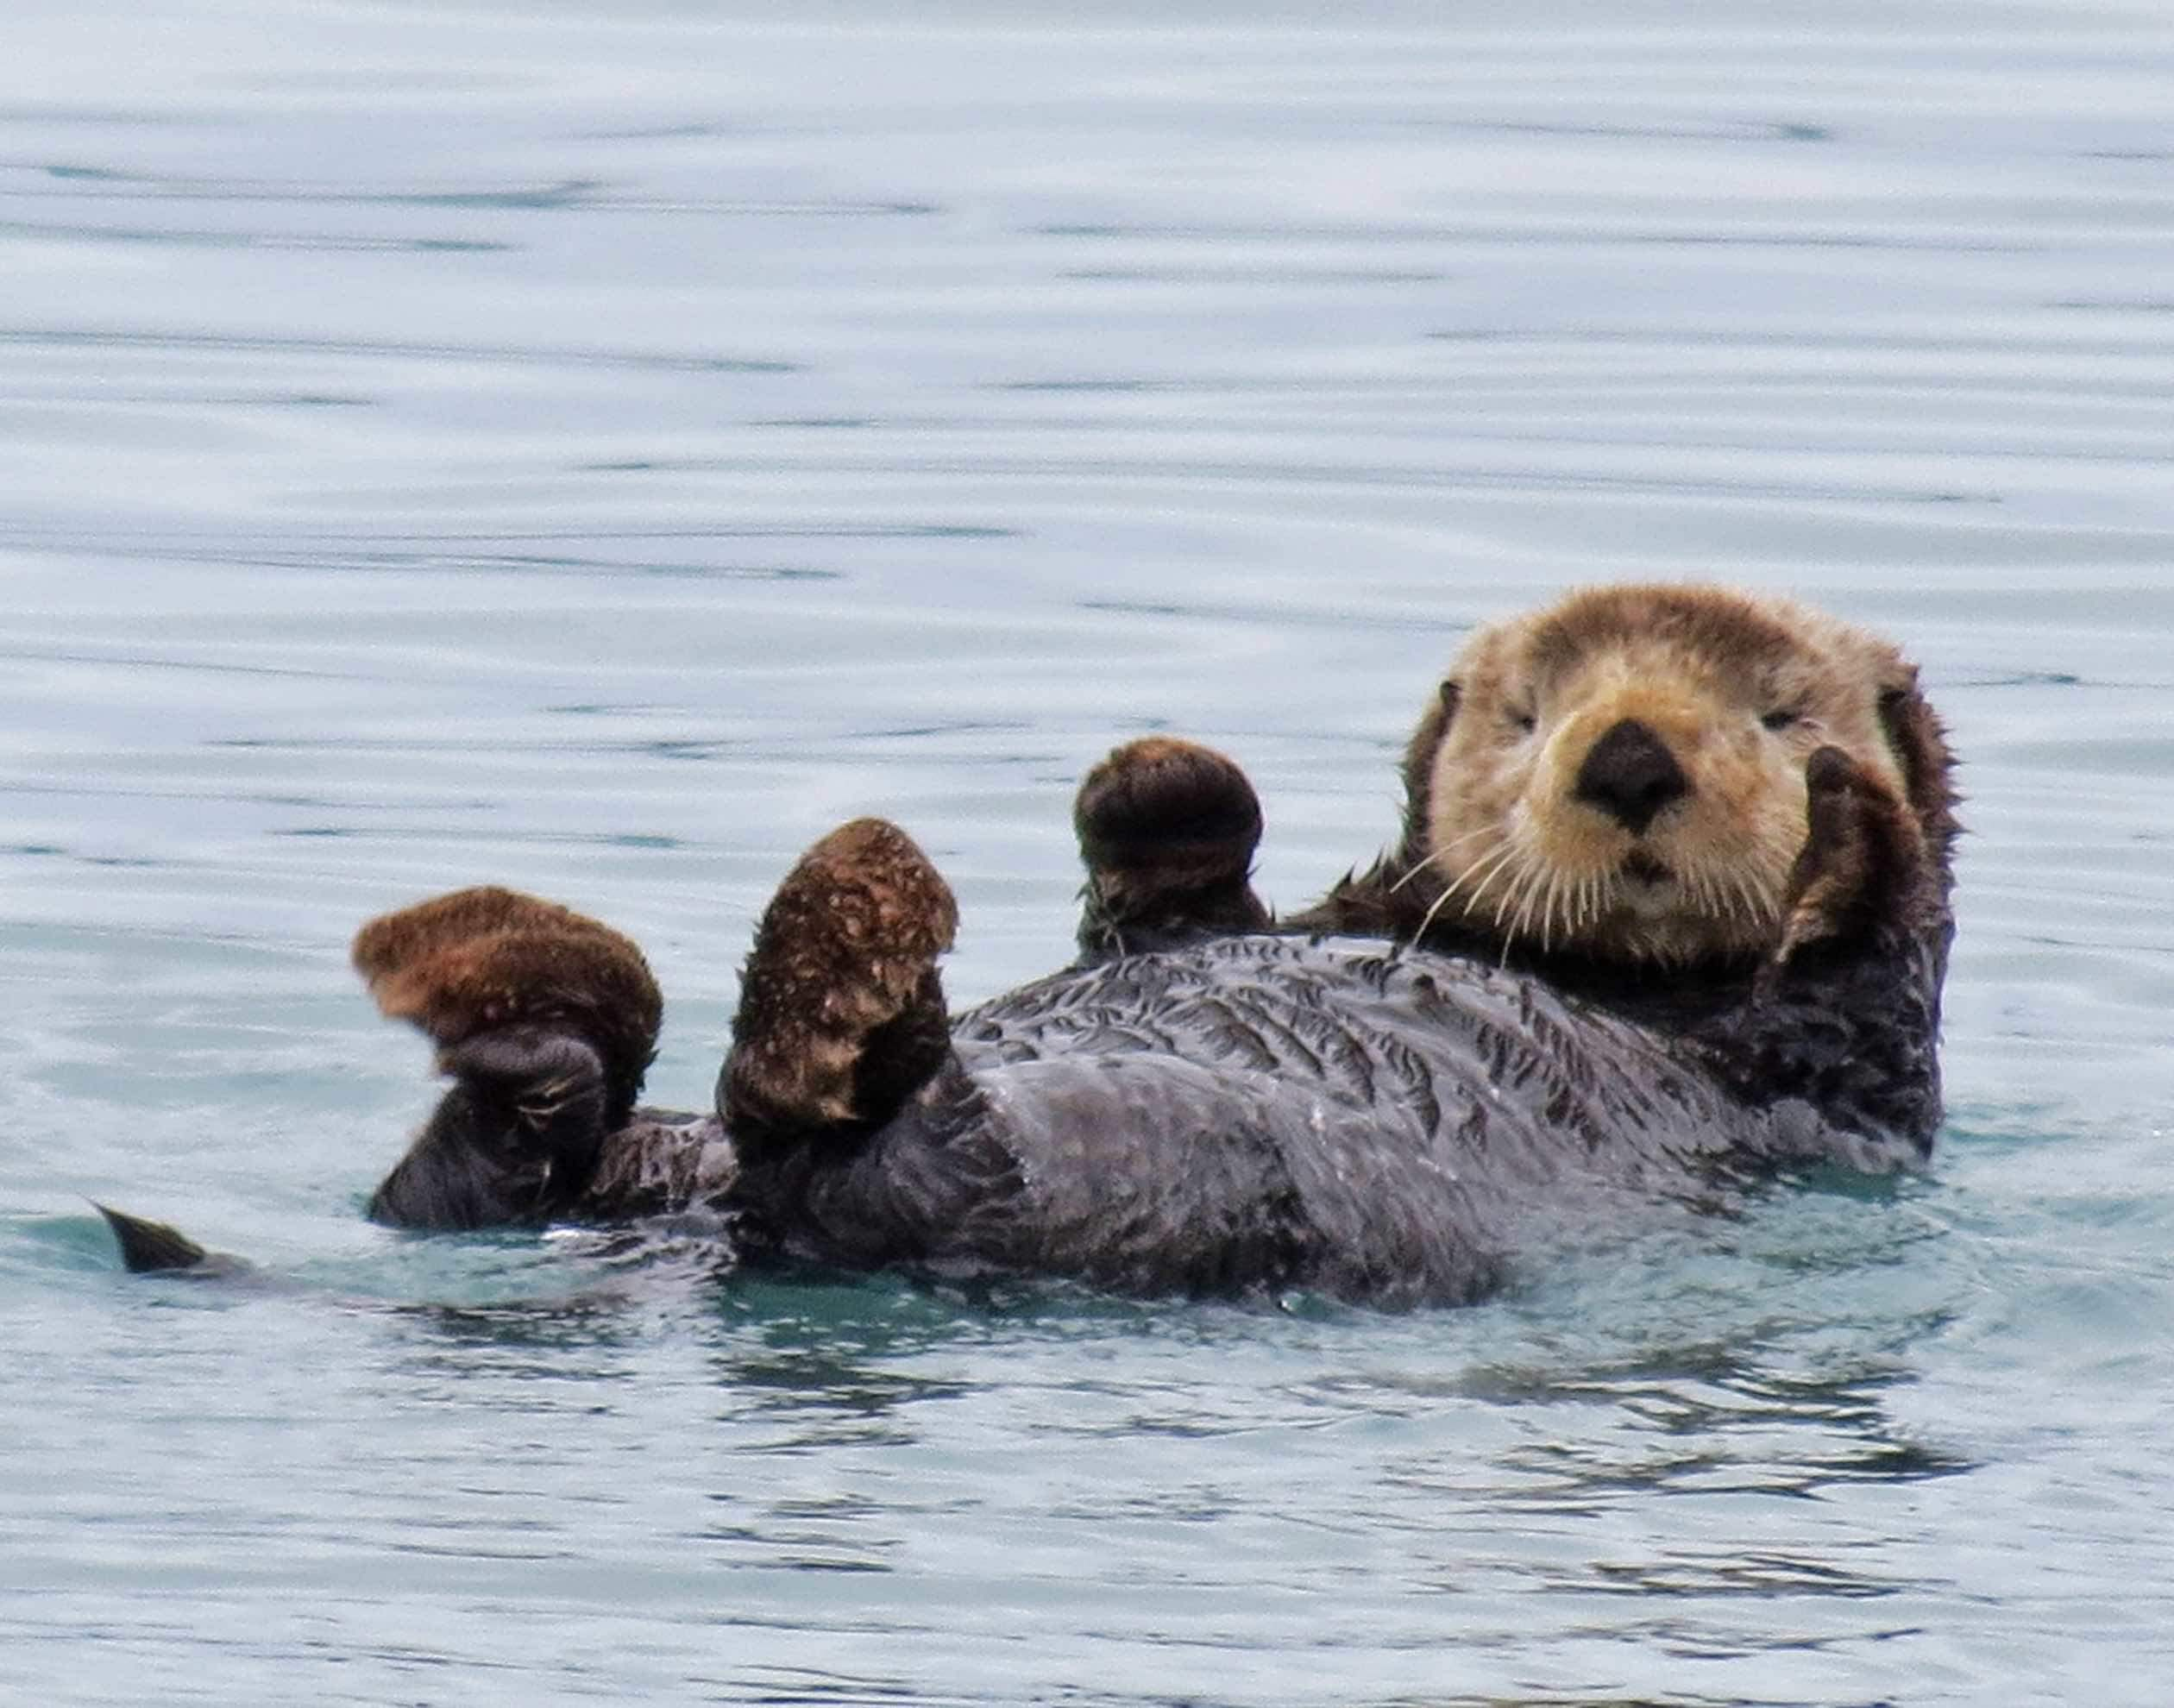 An Alaskan Sea Otter floats on its back in a fiord, looking directly at the camera.